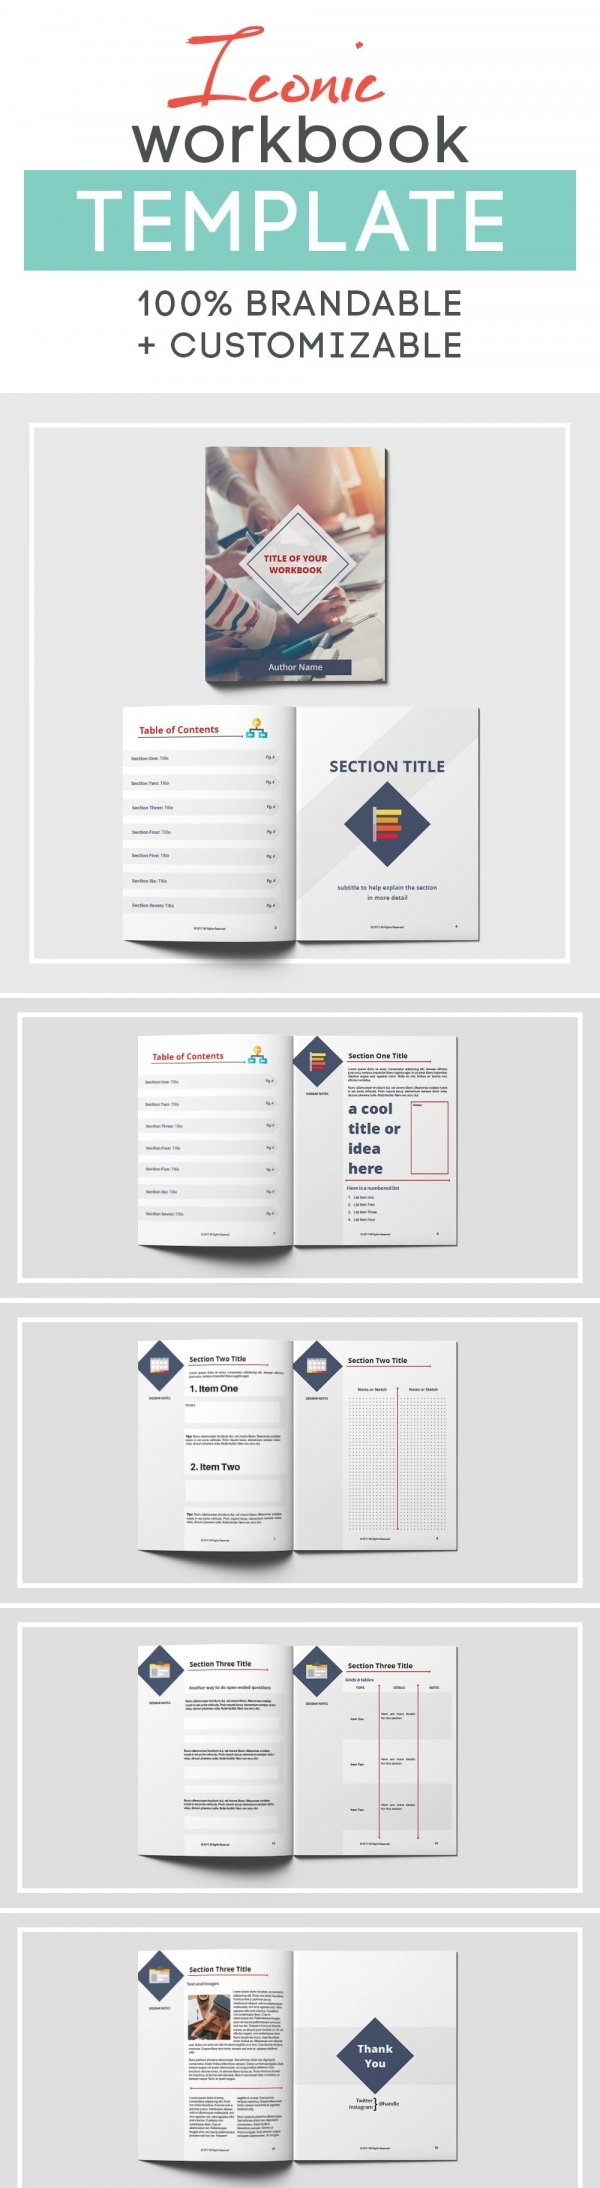 iconic workbook template if you are looking for a sleek clean and